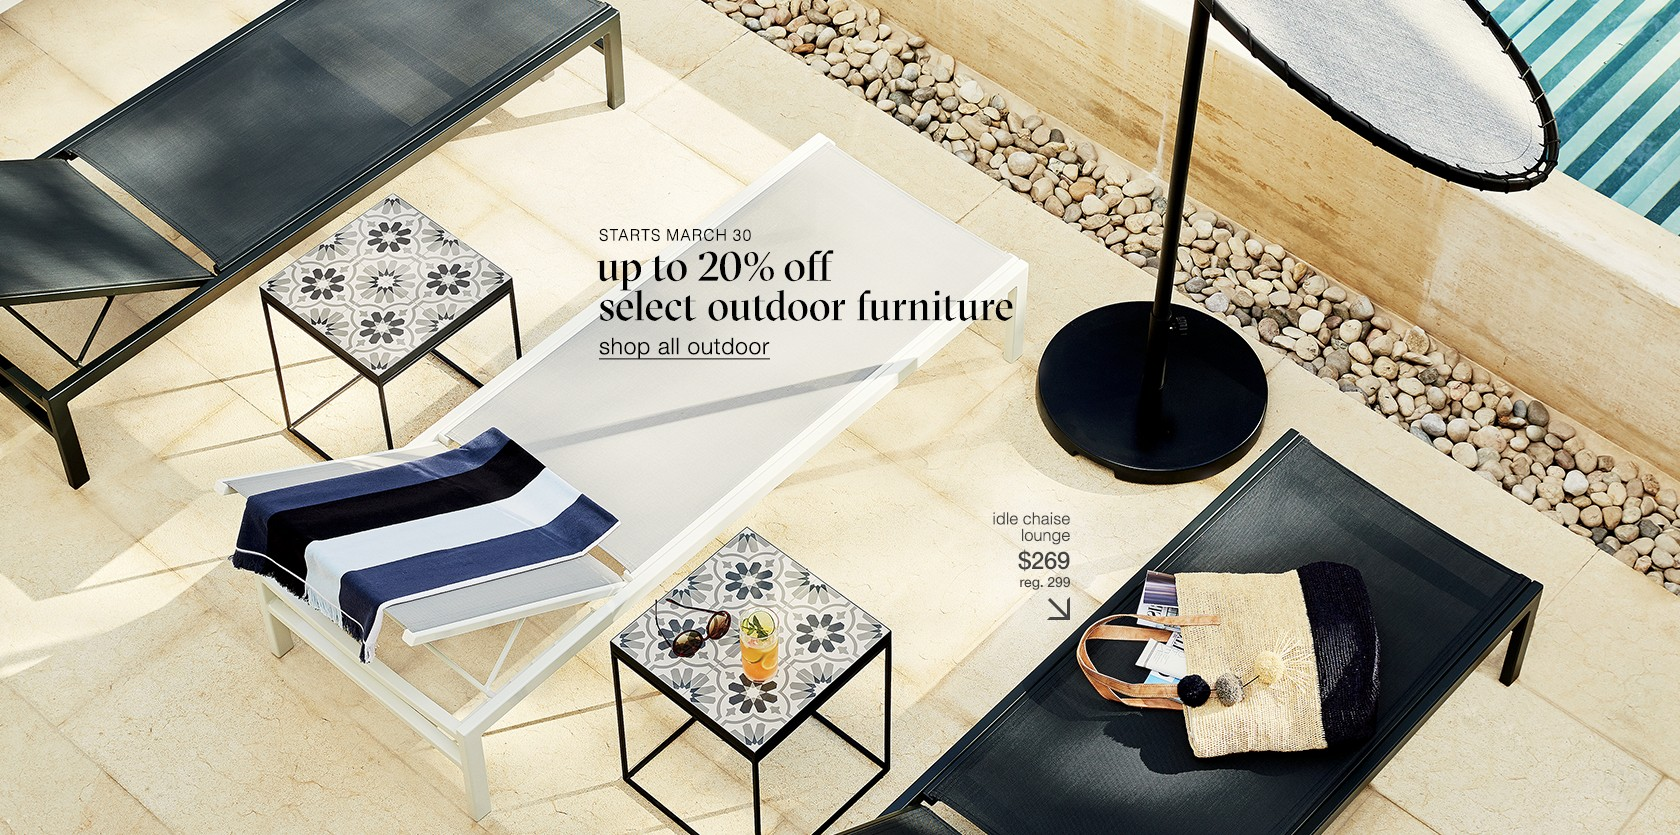 coming hot. up to 20% off select outdoor furniture.